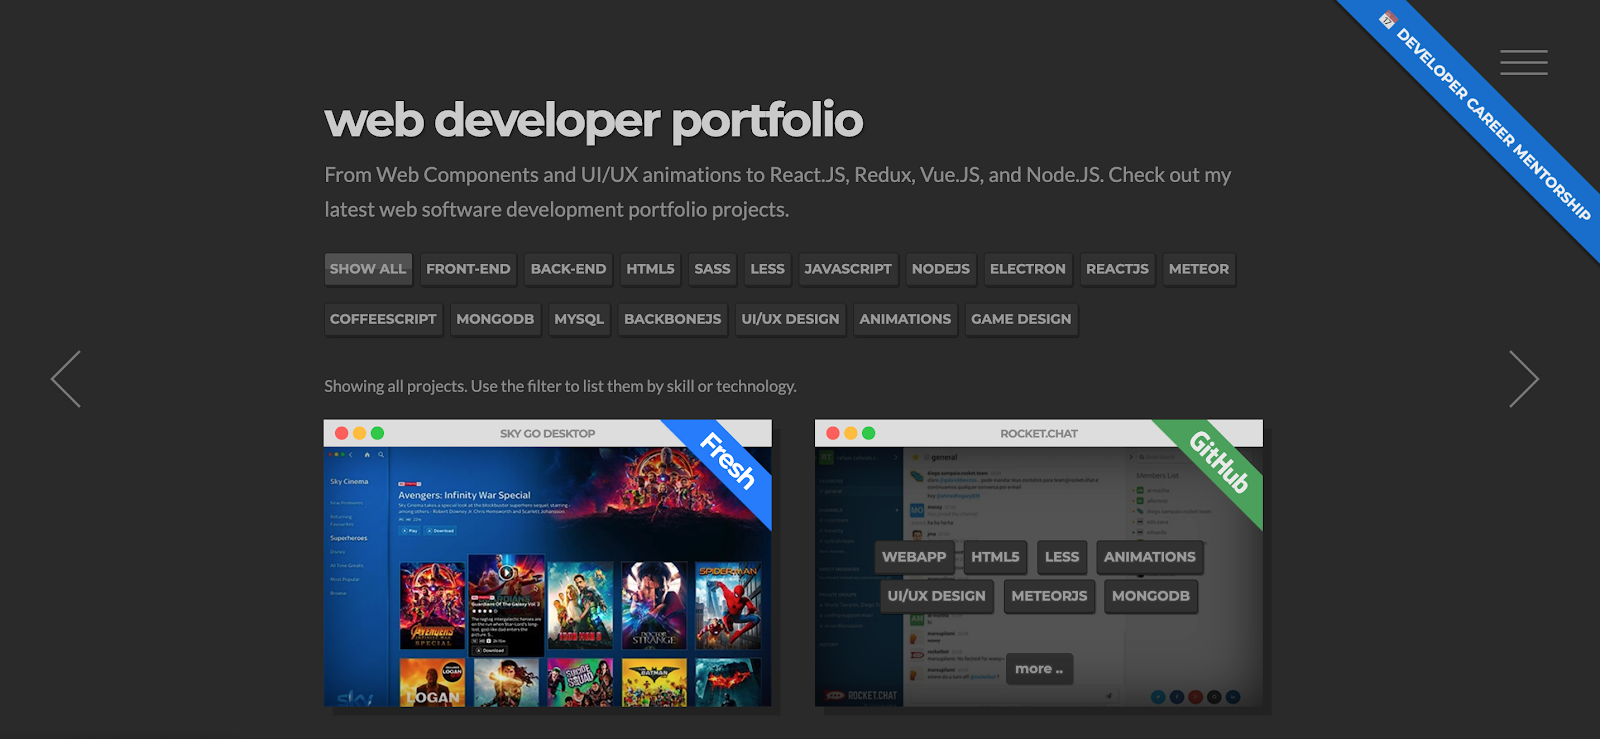 Web Developer Portfolio of Rafael Caferati